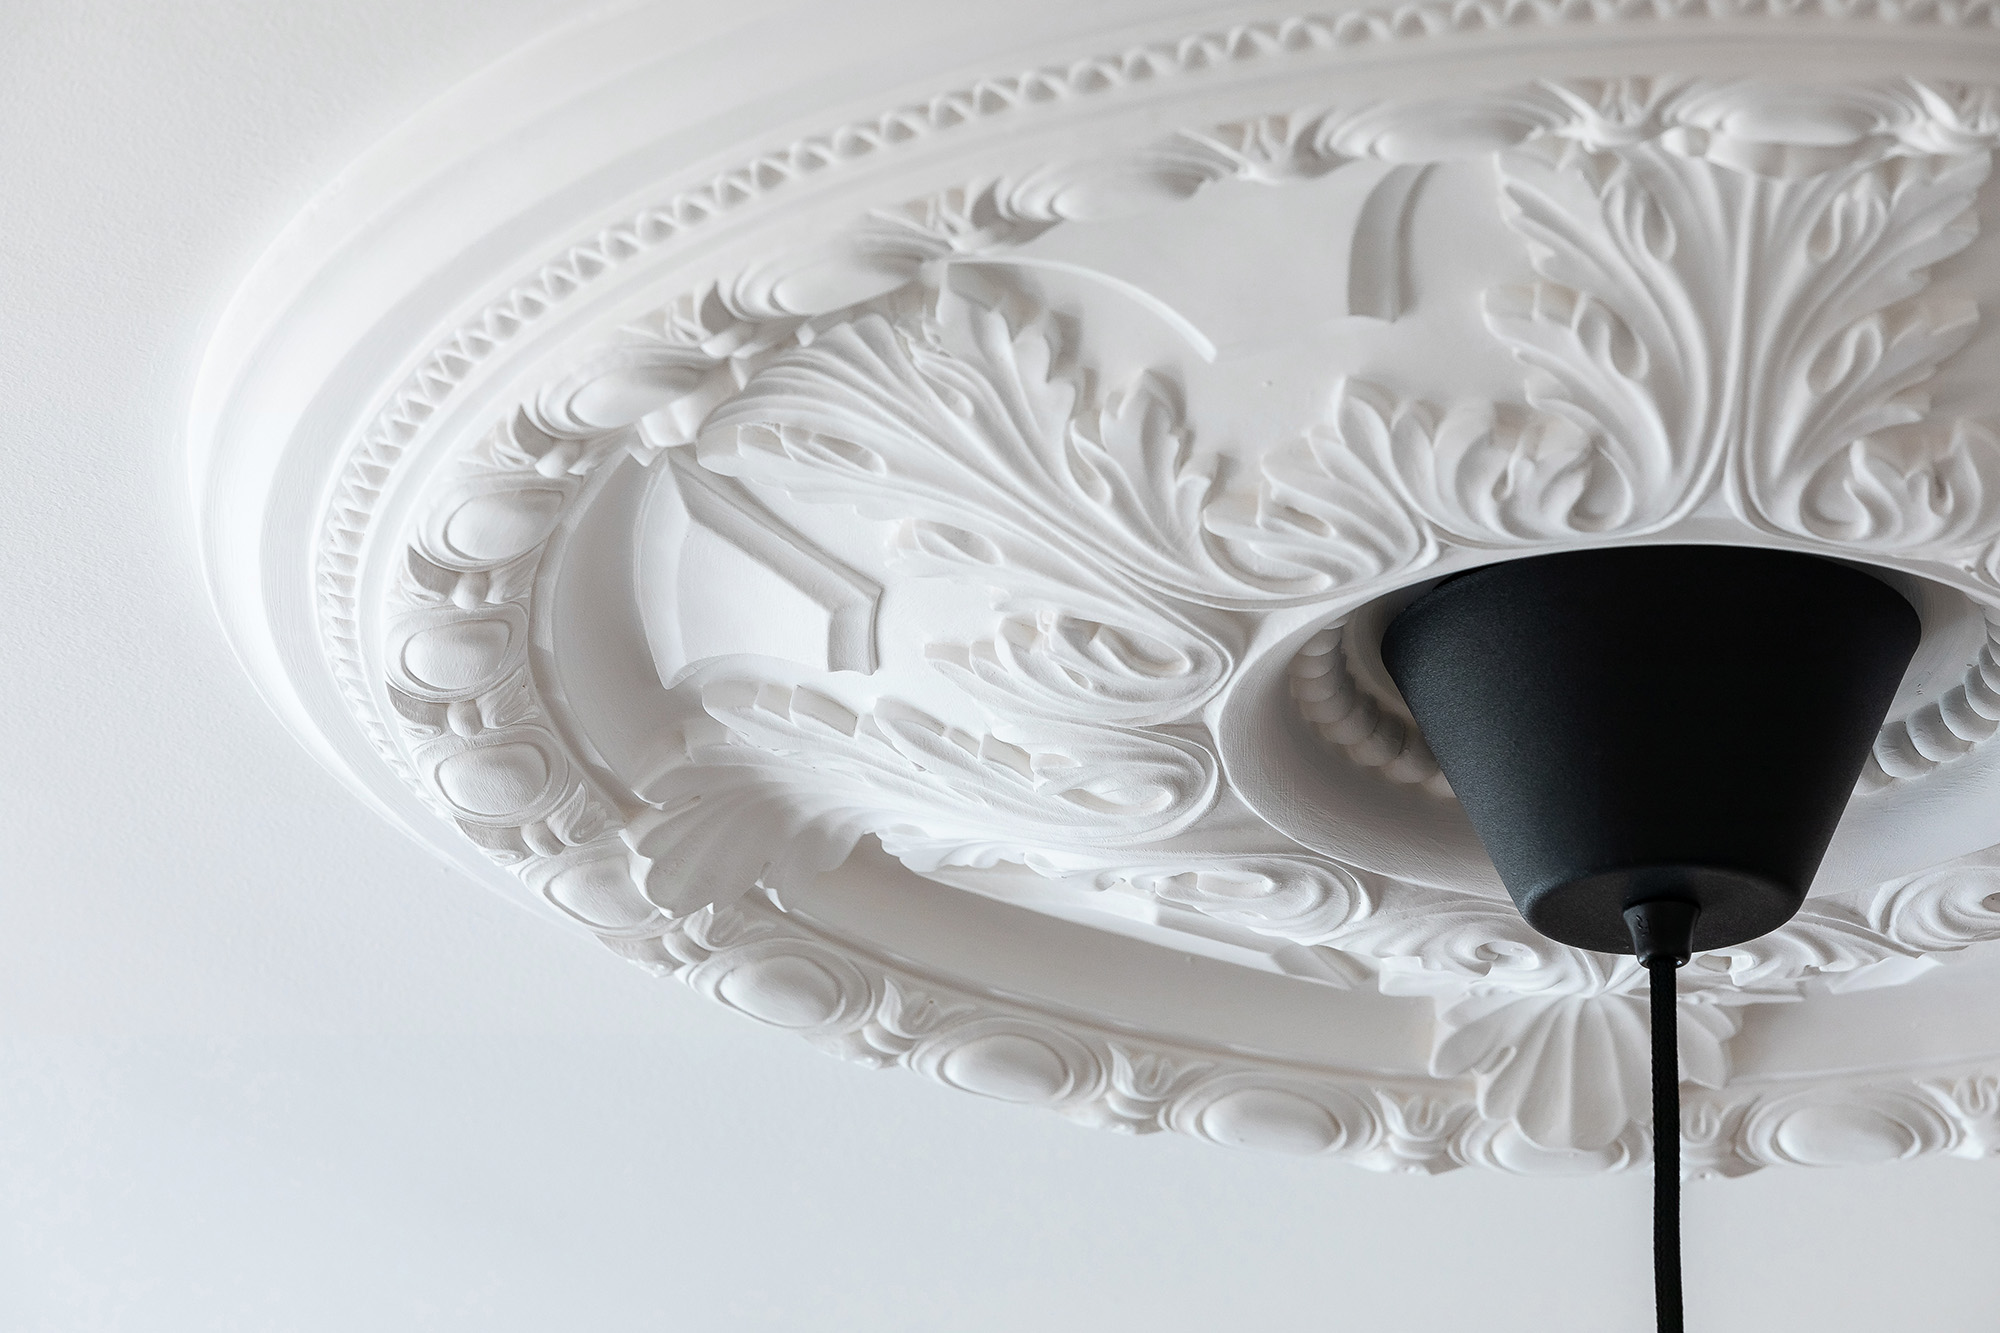 Original details like ceiling roses can add no end of character to a modern living space. Image: Create Bespoke